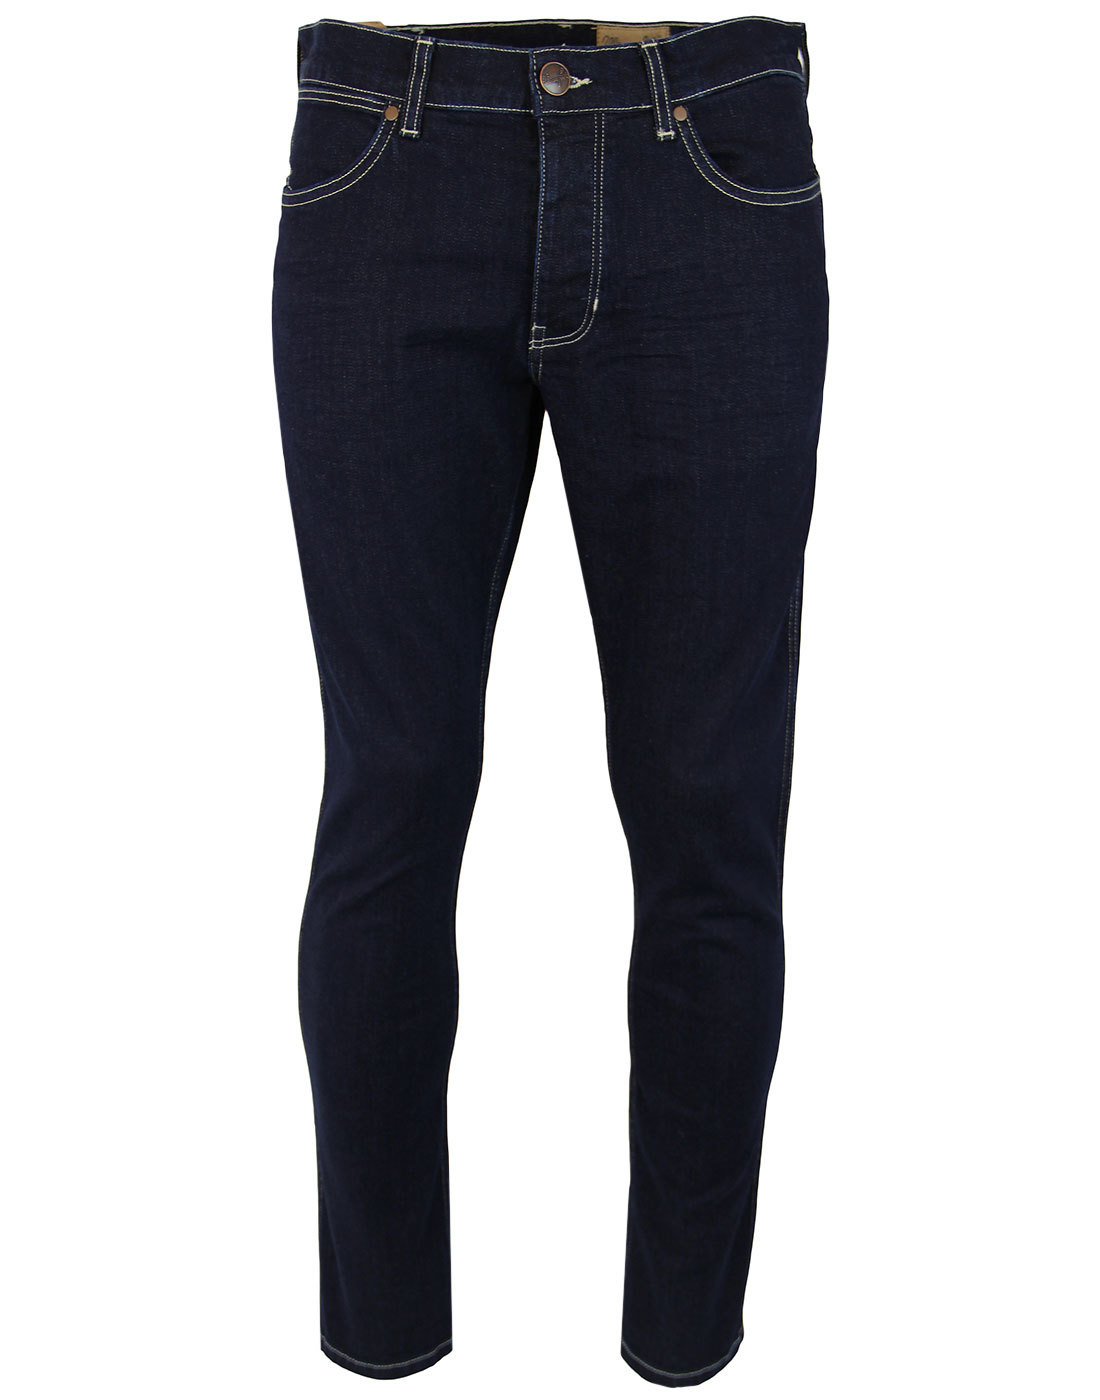 Spencer WRANGLER Retro Mod Slim Dark Denim Jeans